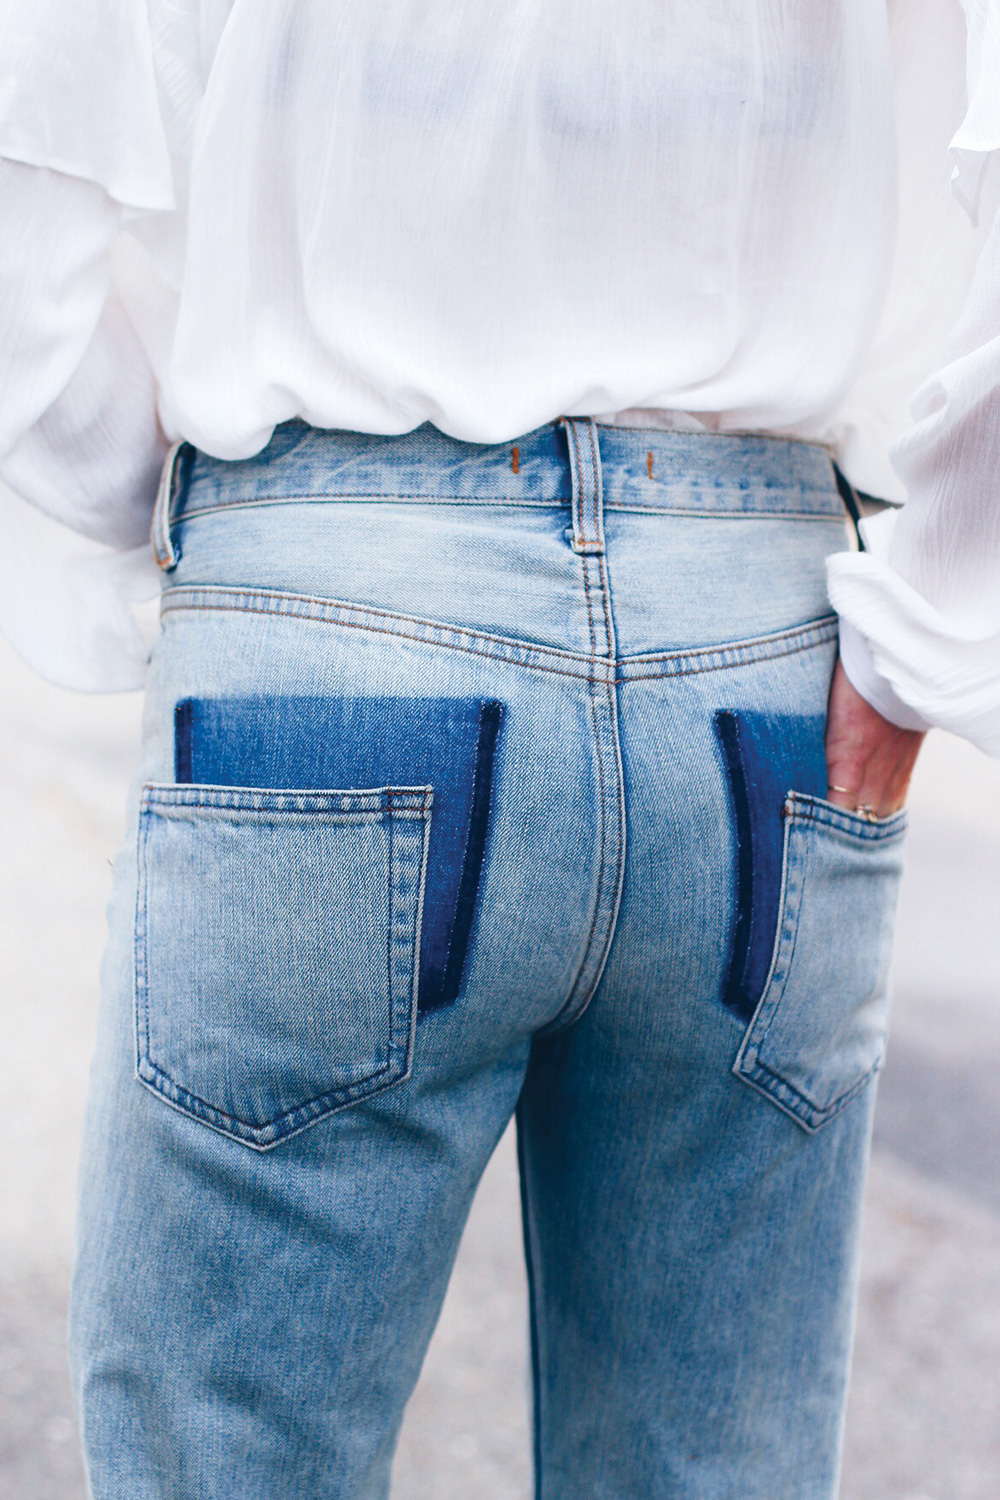 DIY Drop Pocket Jeans